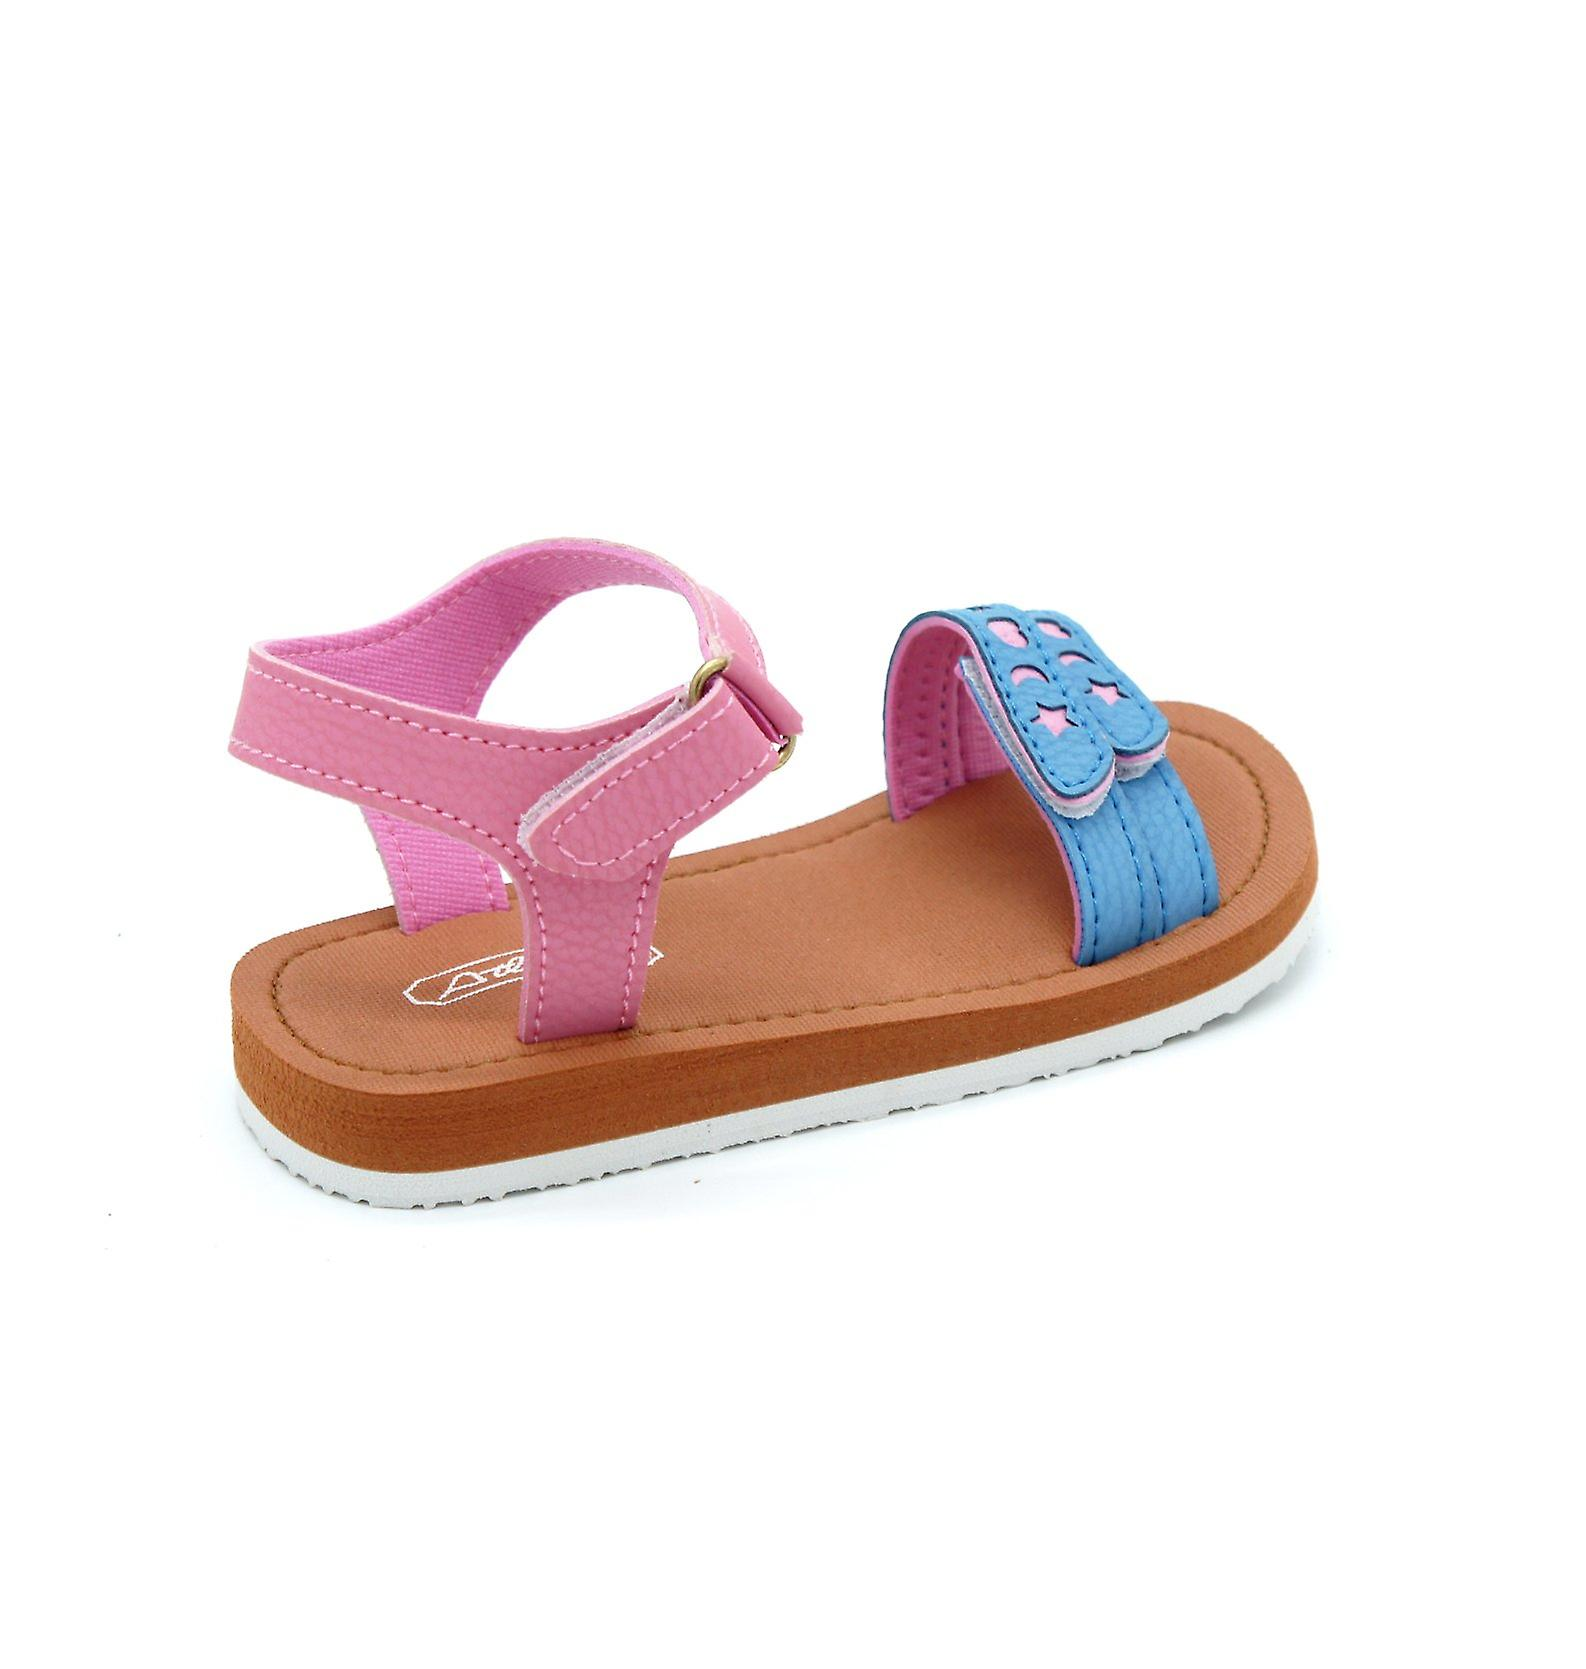 Atlantis Shoes Kids Girls Supportive Cushioned Comfortable Sandals Fashion Girl Turquoise